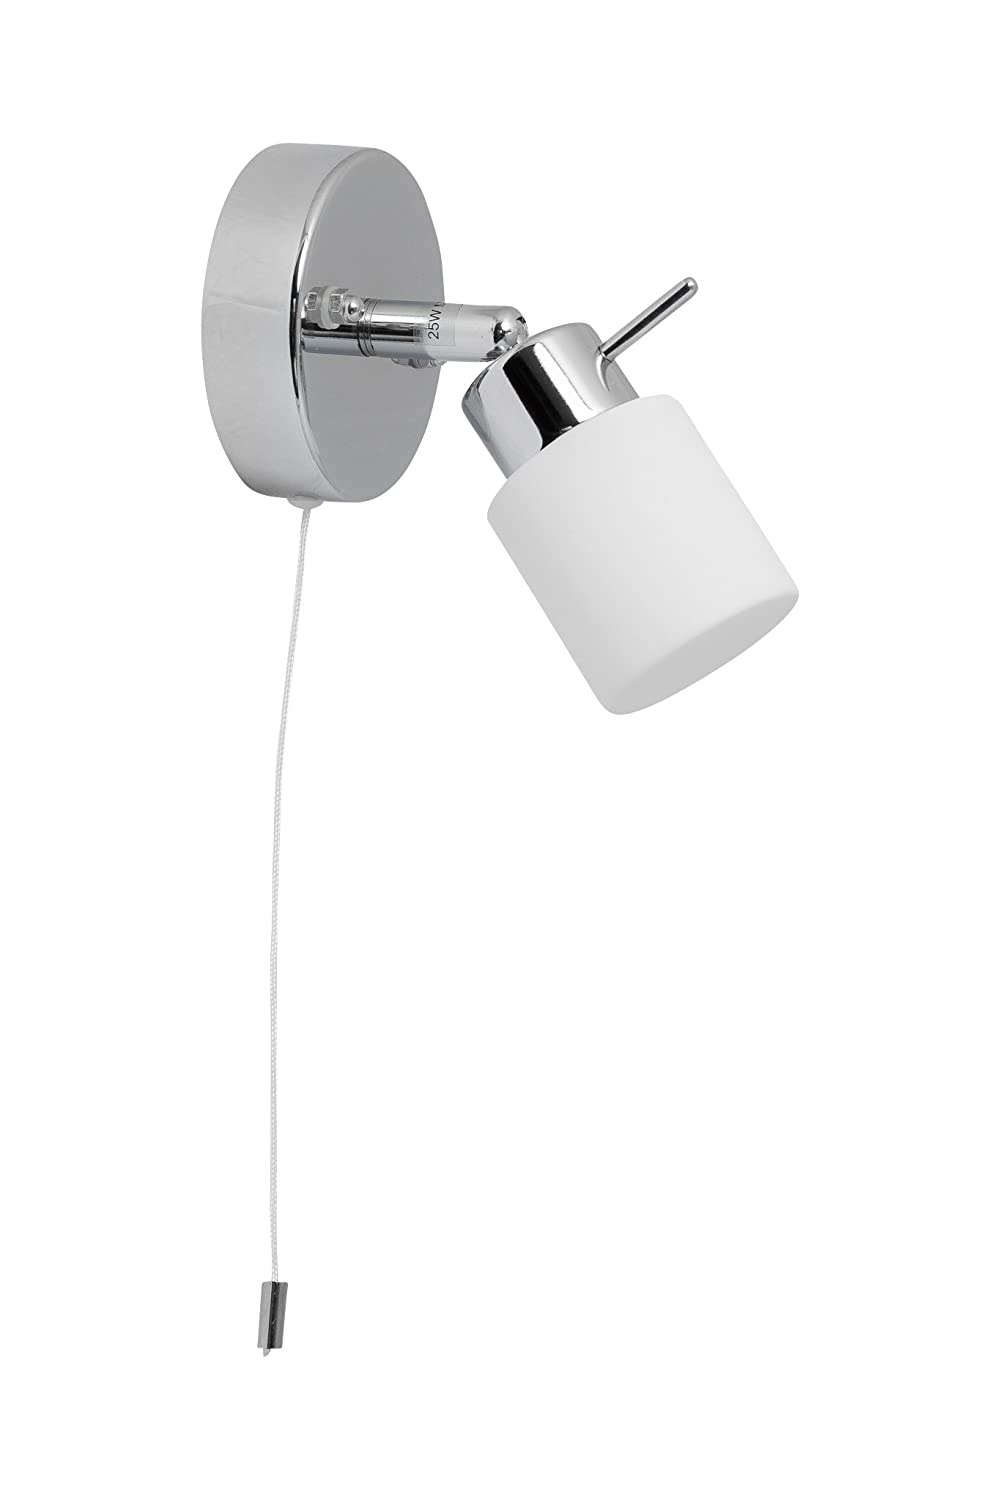 Pair Of Modern Polished Chrome Ip44 Bathroom Wall Lights With Pull Cord Switch For Bathrooms Light Pullswitch On Off